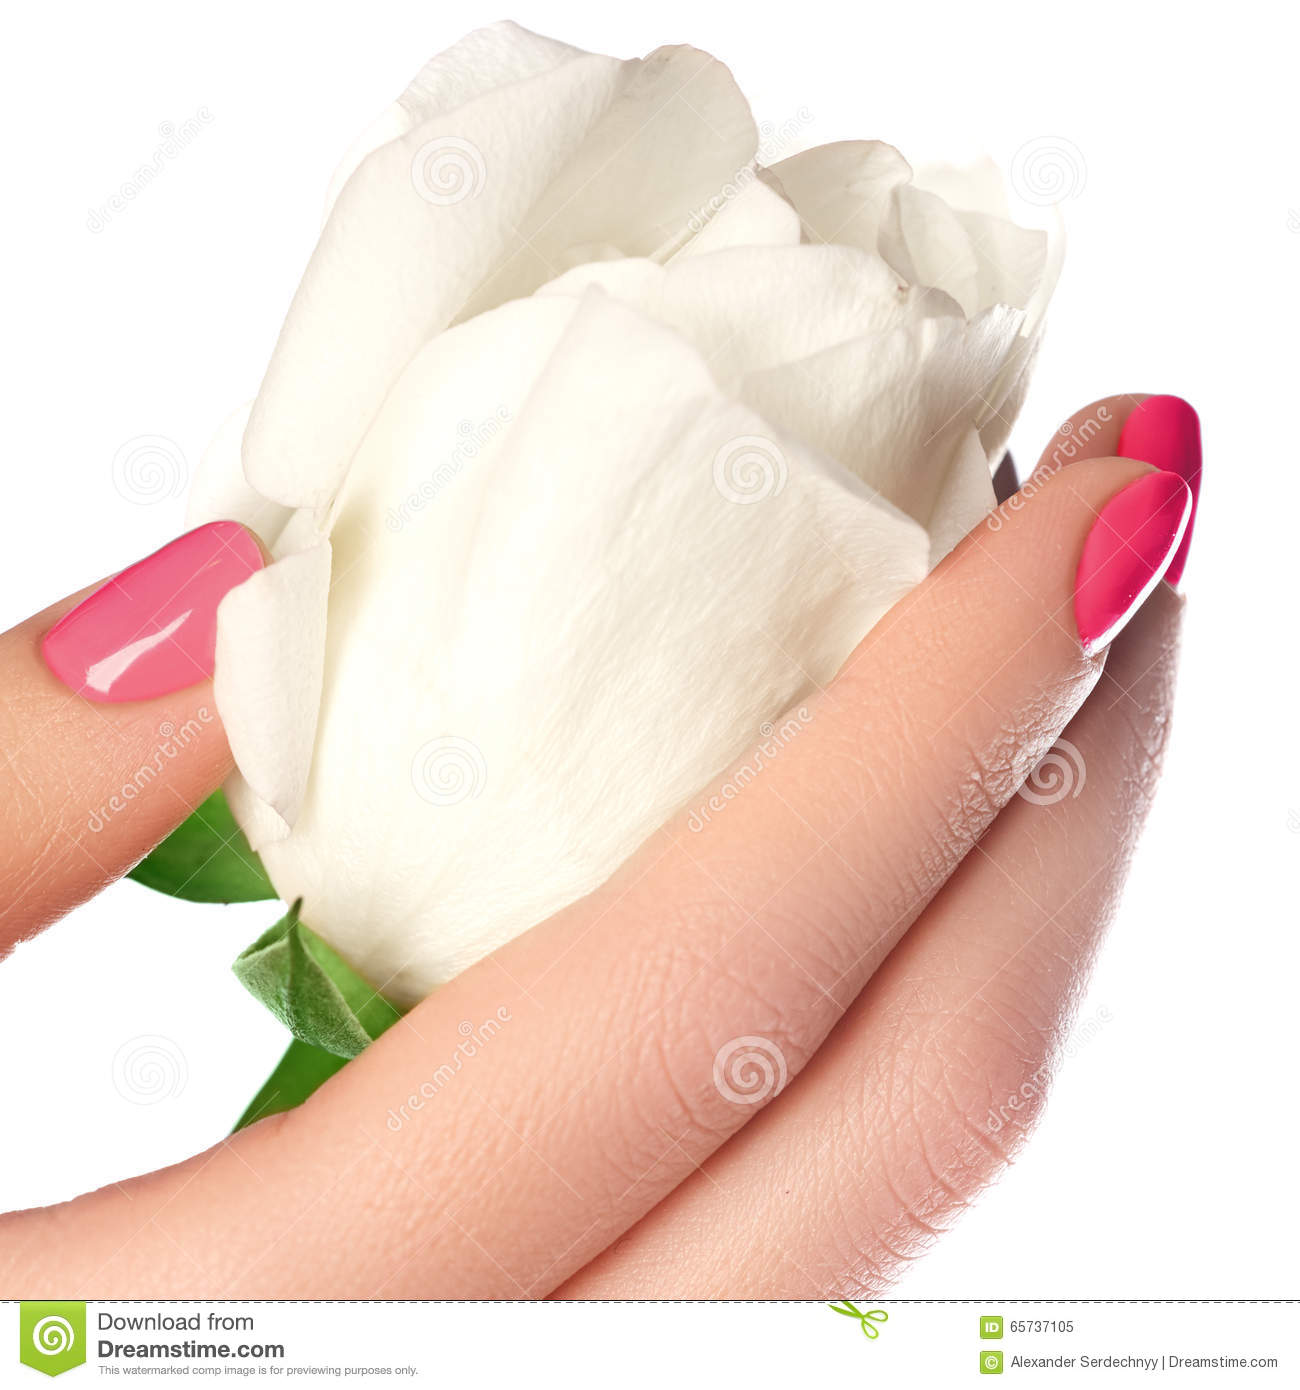 Free Manicure Beauty Hands Makeover: Manicure, Hands & Spa. Beautiful Woman Hands, Soft Skin